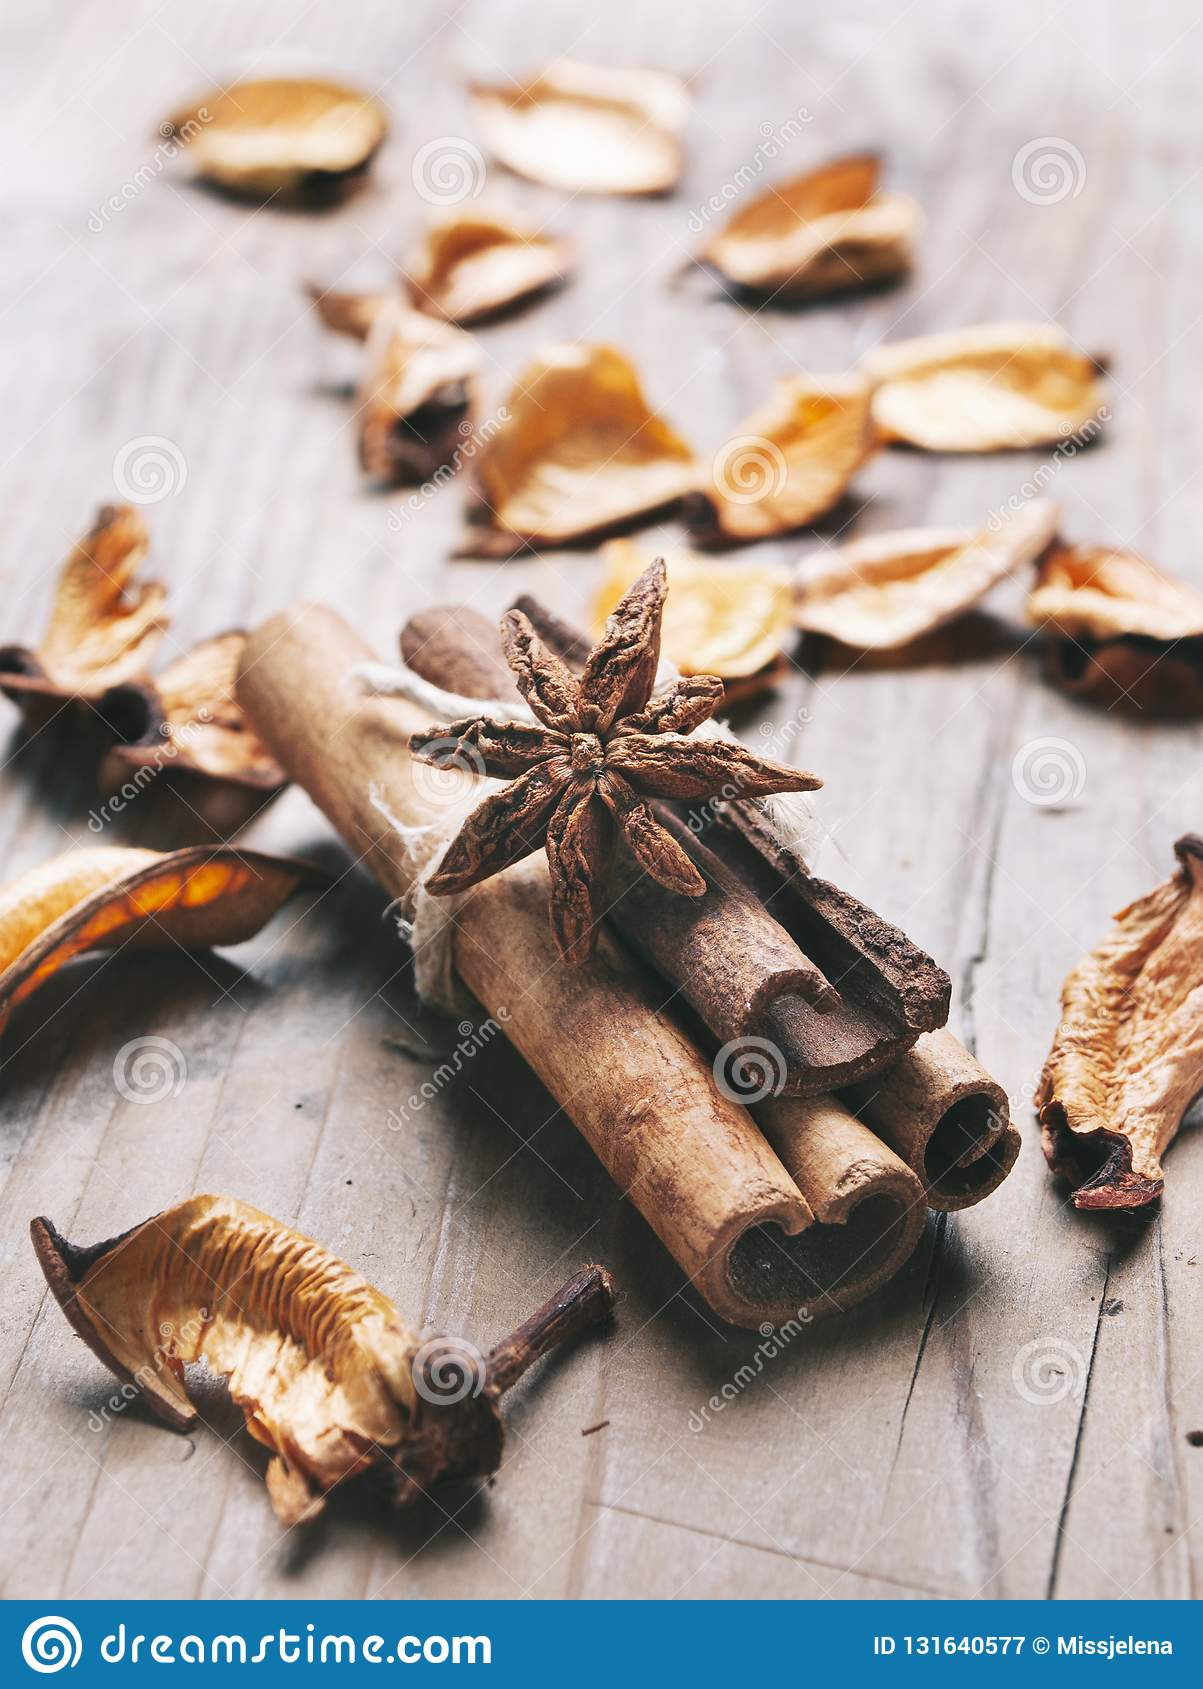 Closeup of cinnamon and anise star flavor with scented dry flower potpourri on vintage wooden table background. Zen relax